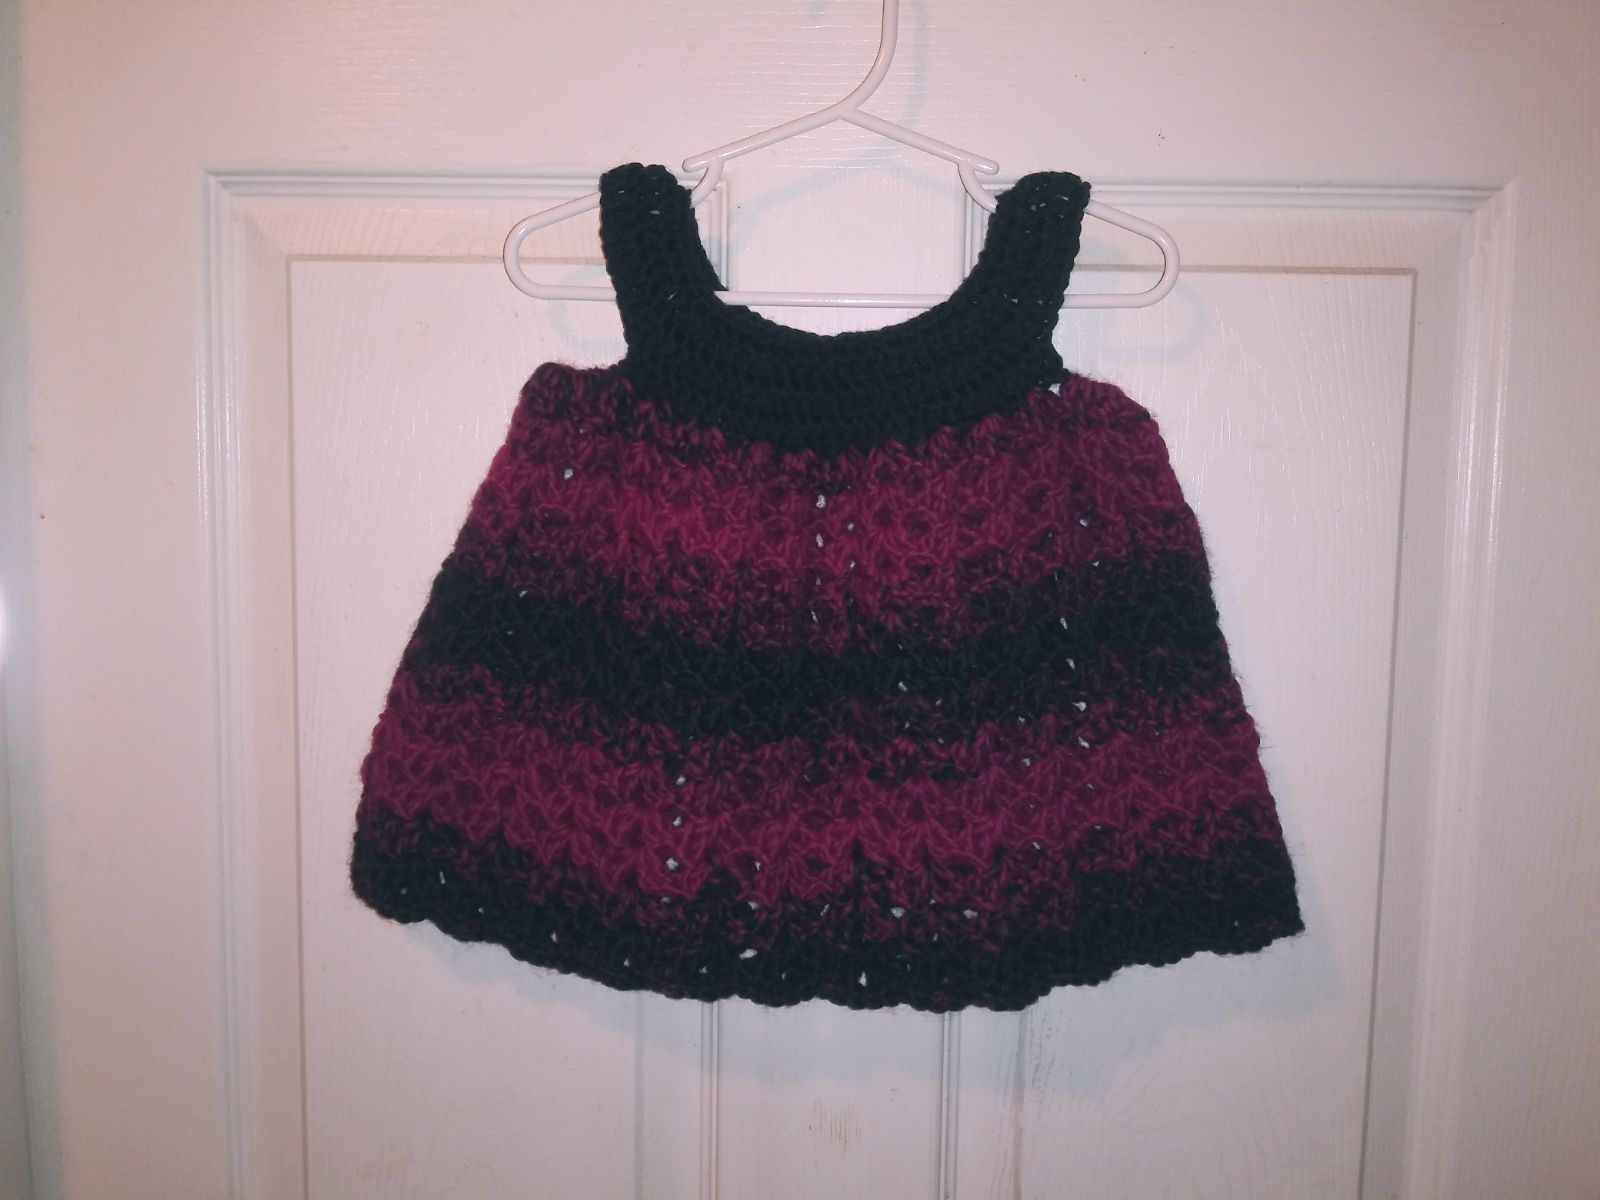 Handmade Crochet Dress